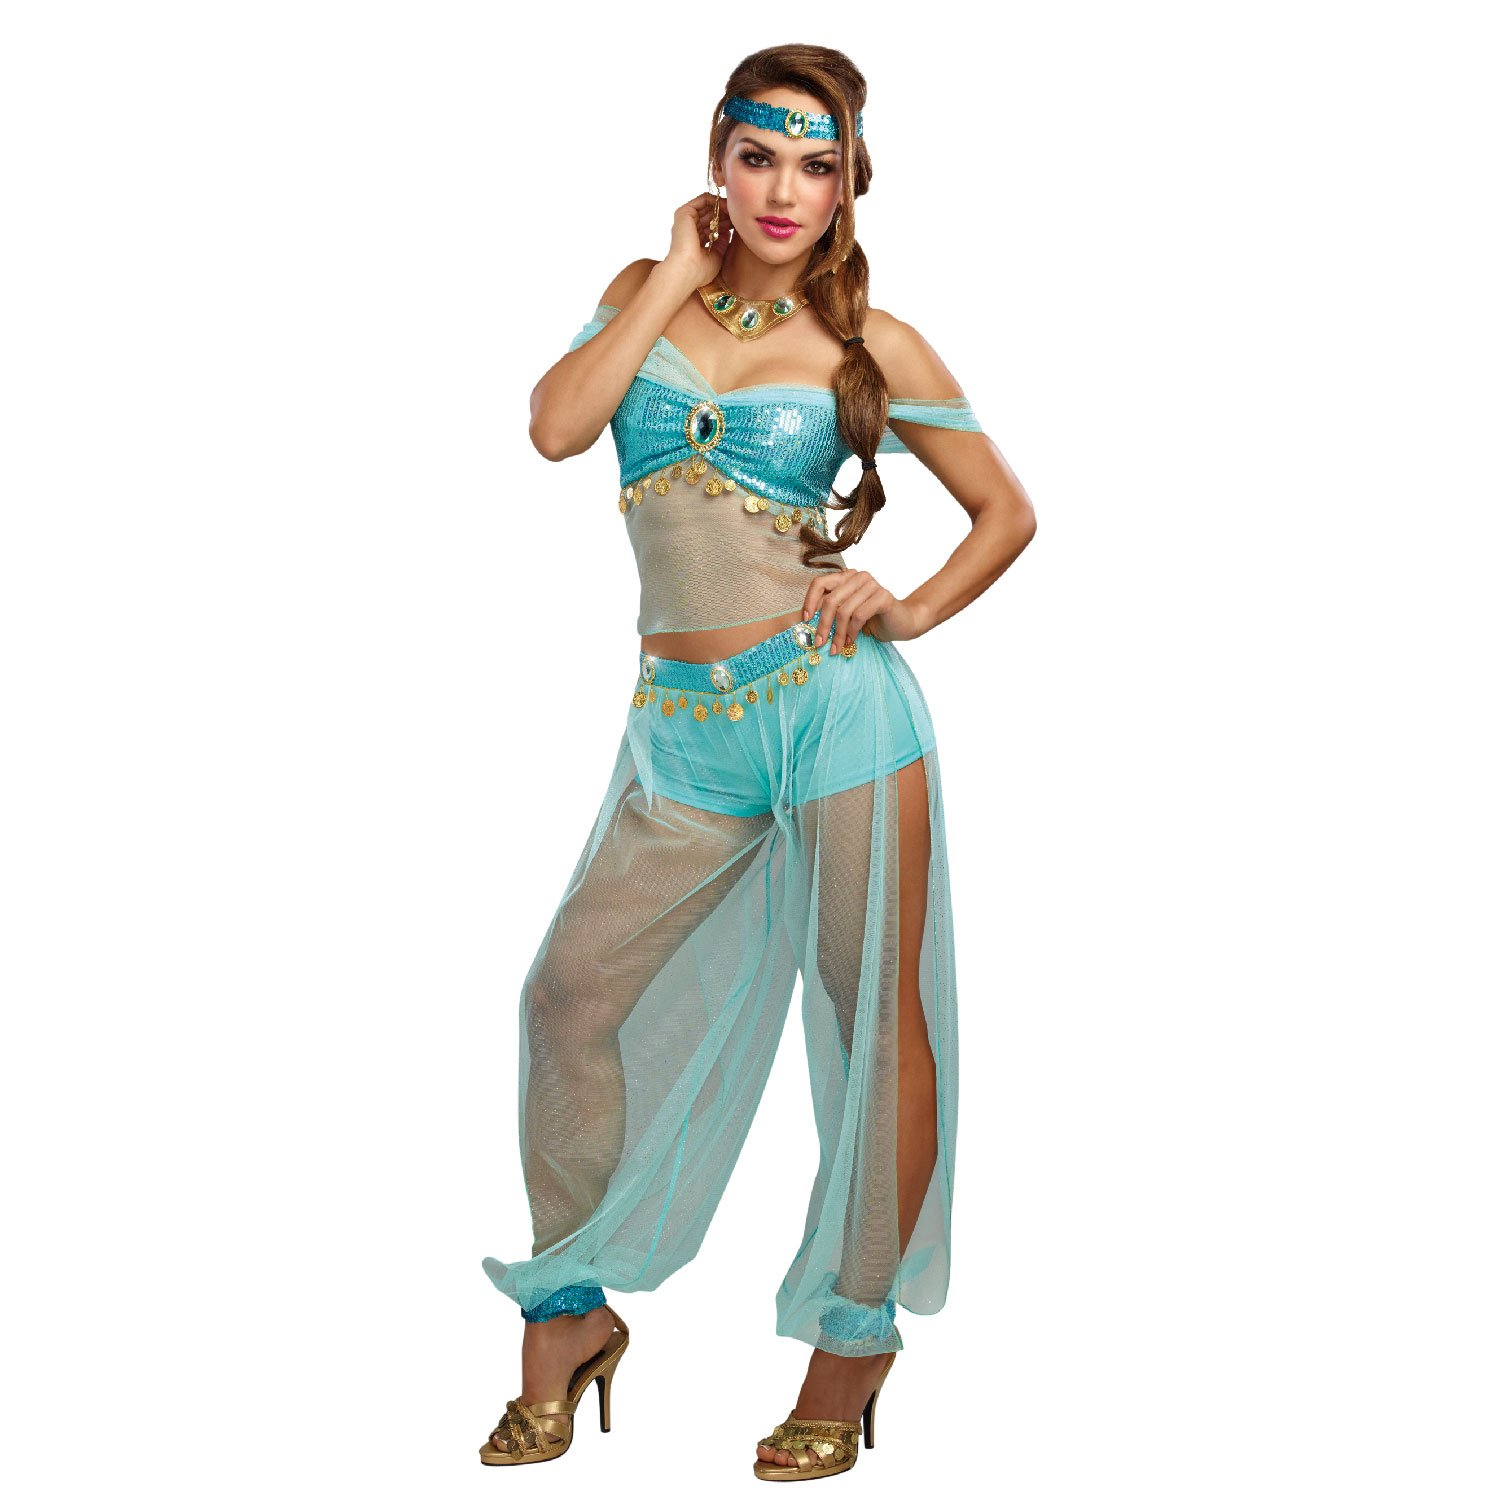 L Dreamgirl 10659 Harem Princess, Large